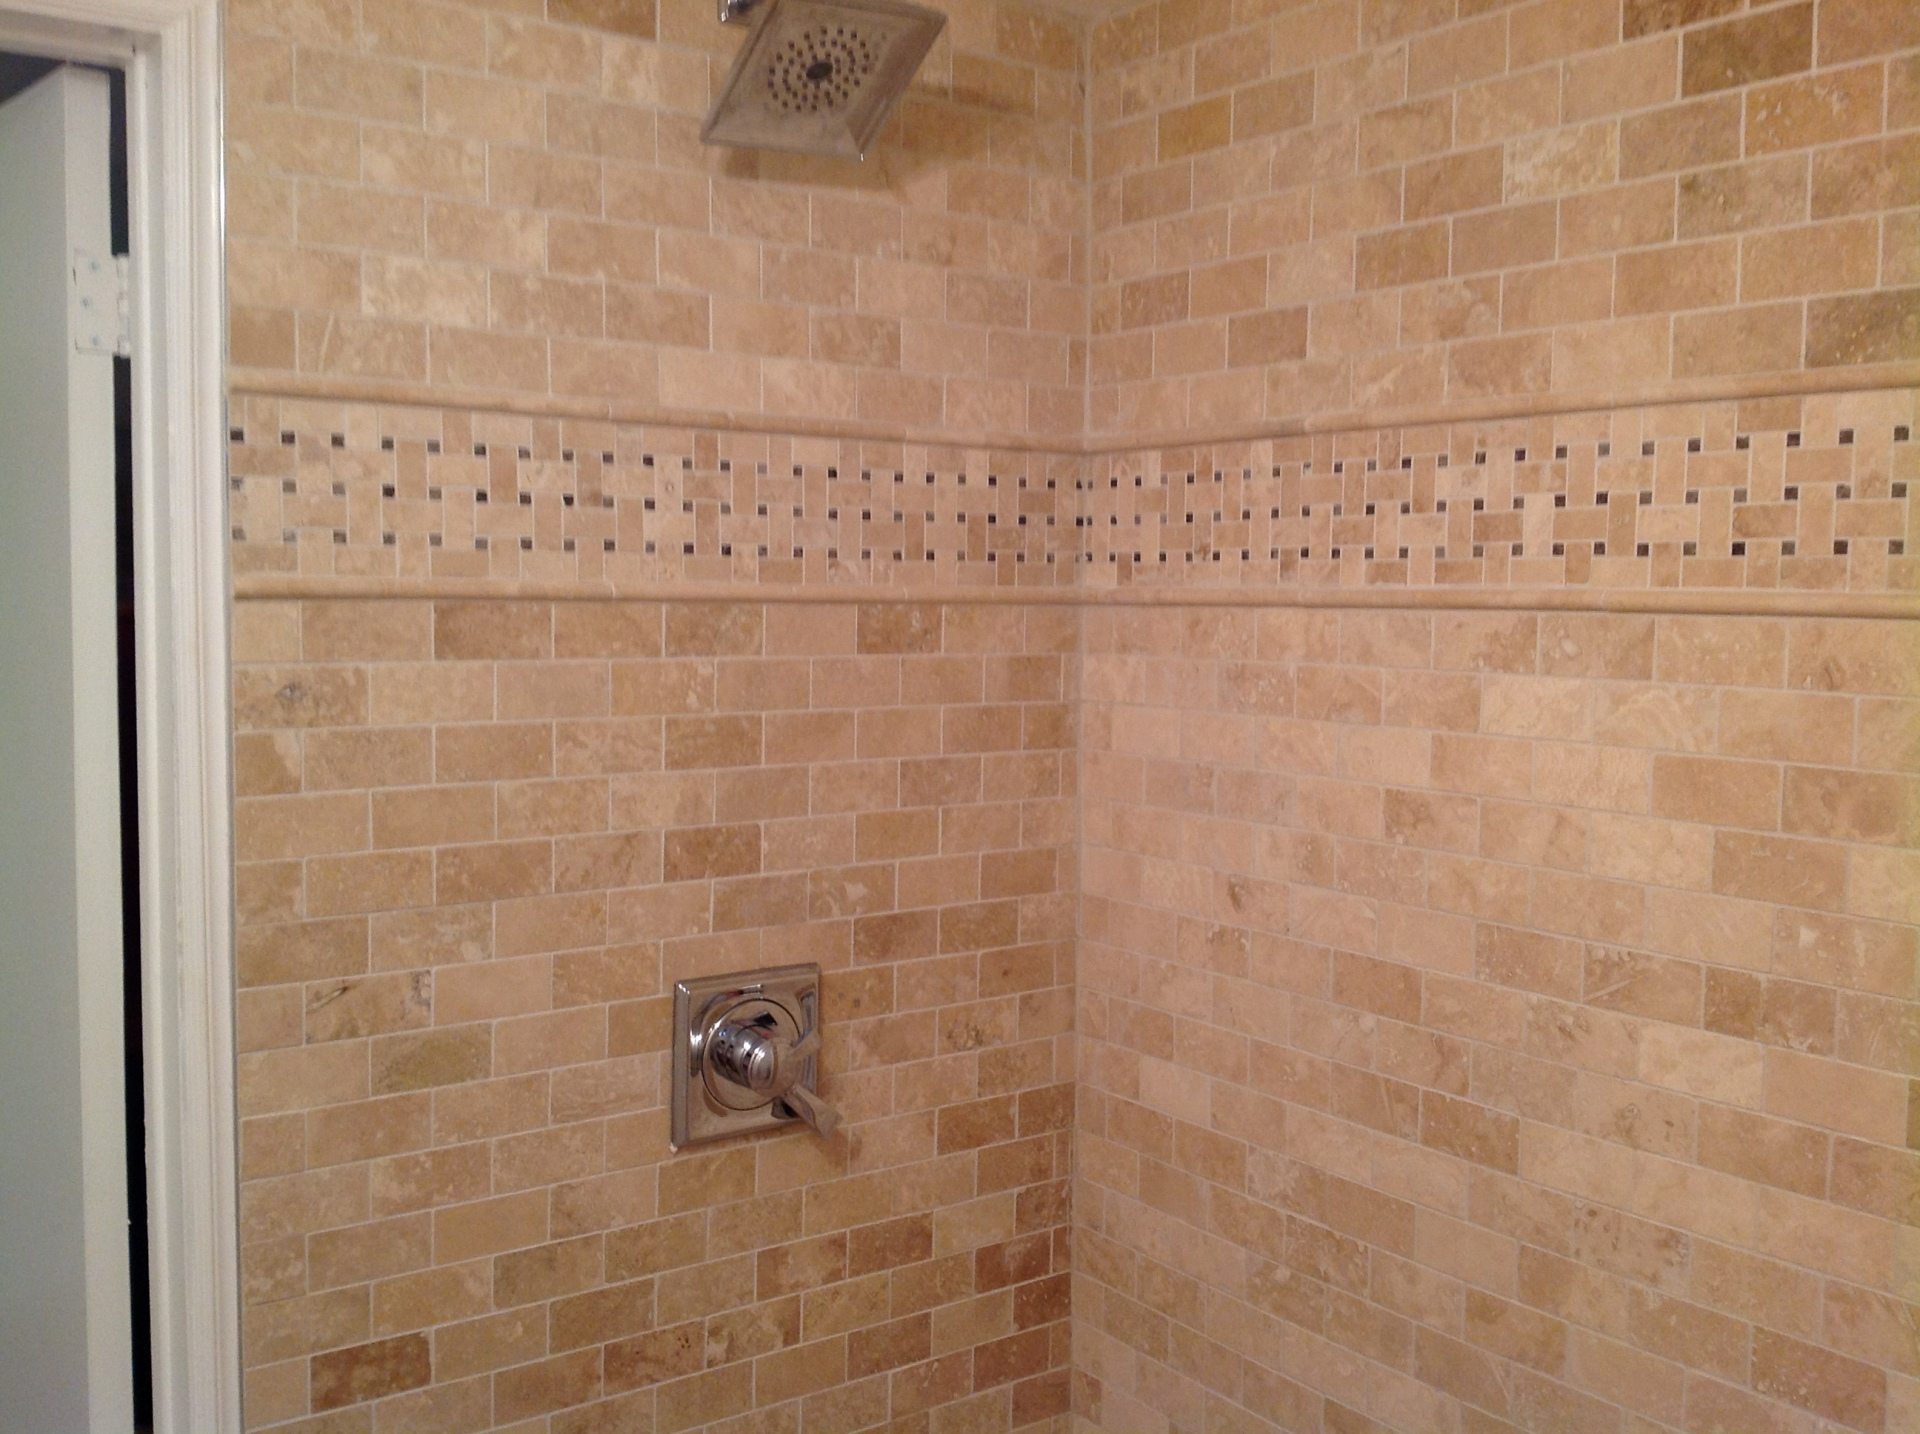 Mosaic Shower tiled with porcelain